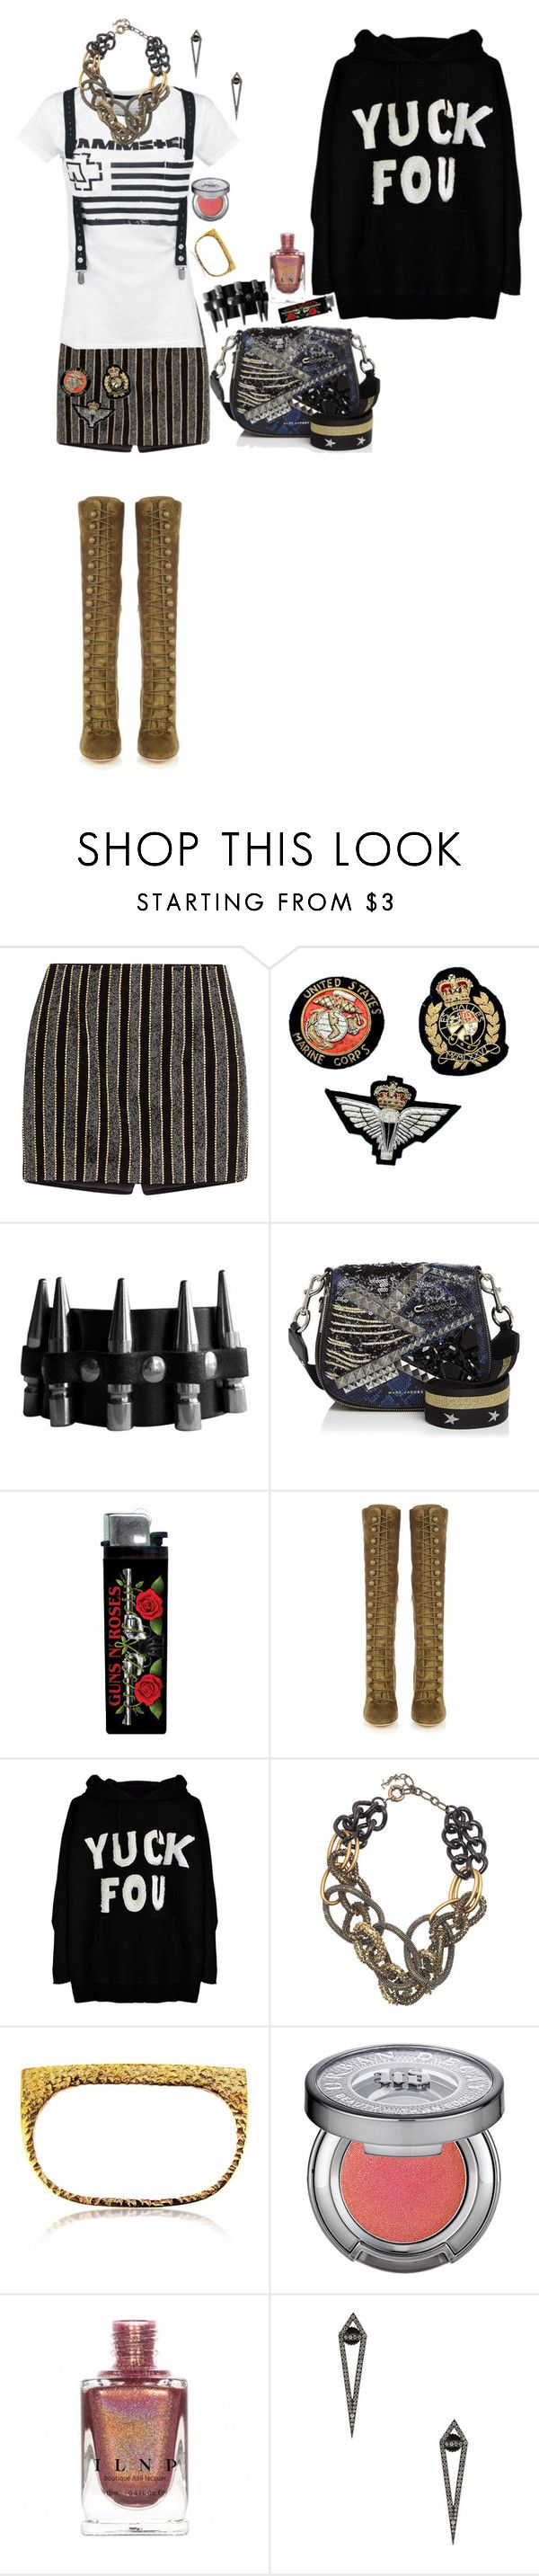 """""""."""" by applecocaine ❤ liked on Polyvore featuring Balmain, Vintage, Marc Jacobs, Gianvito Rossi, Yves Saint Laurent, Maya Magal, Urban Decay and Eva Fehren"""